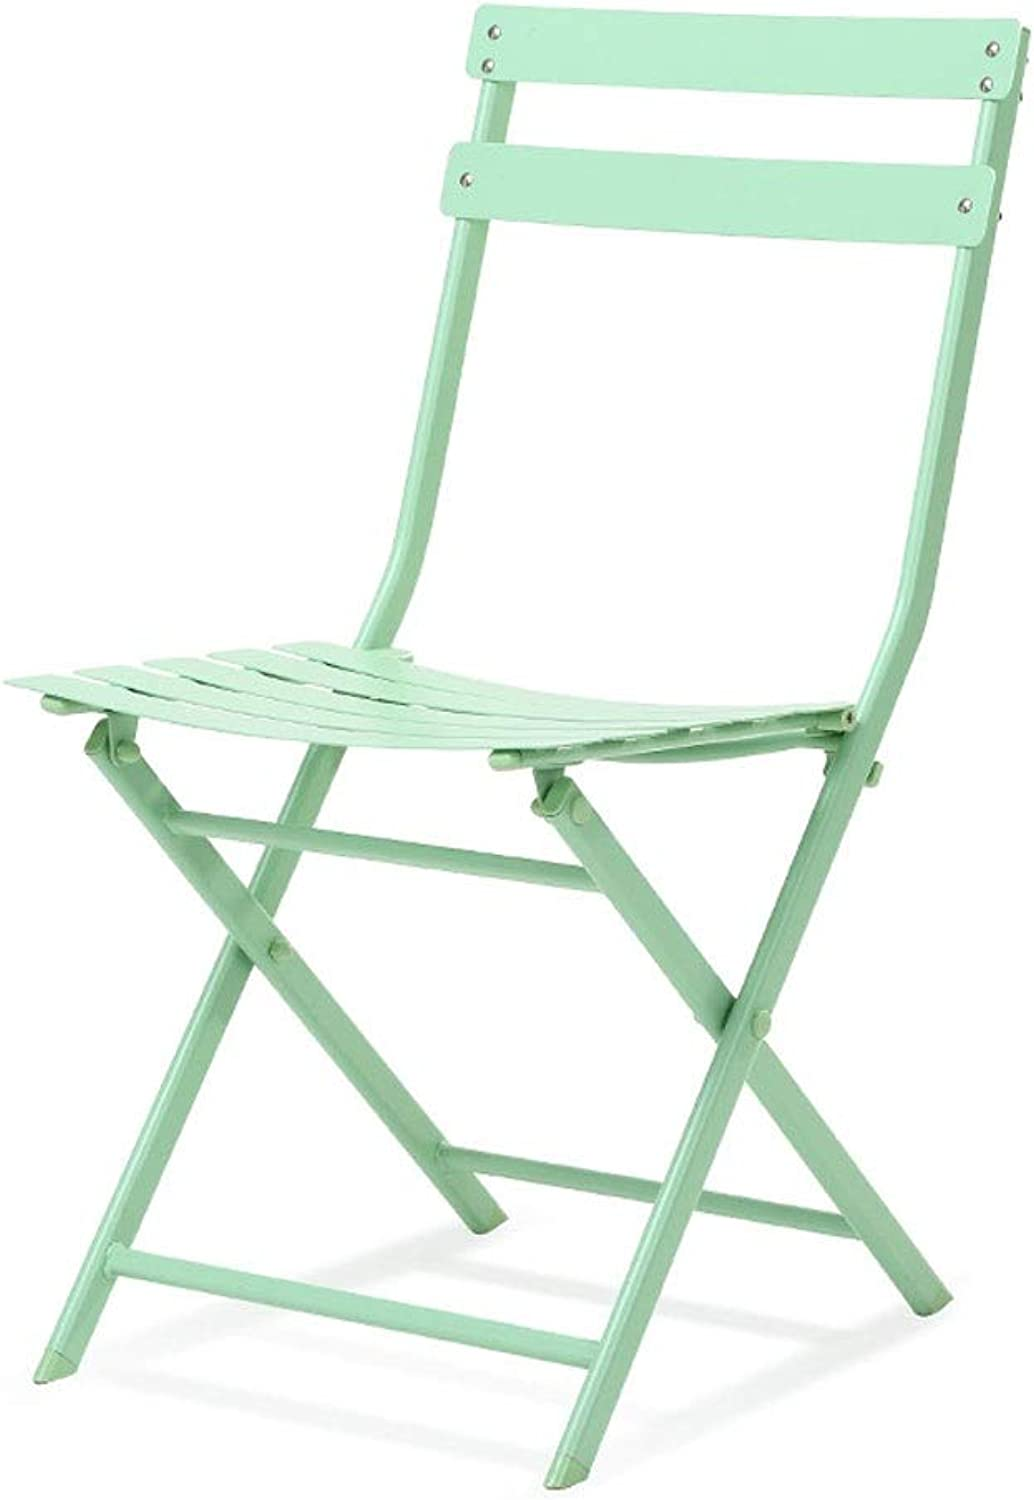 Sleek Minimalist Wrought Iron Folding Dining Chair European Balcony Leisure Chair Iron Metal Chair (color   Green)